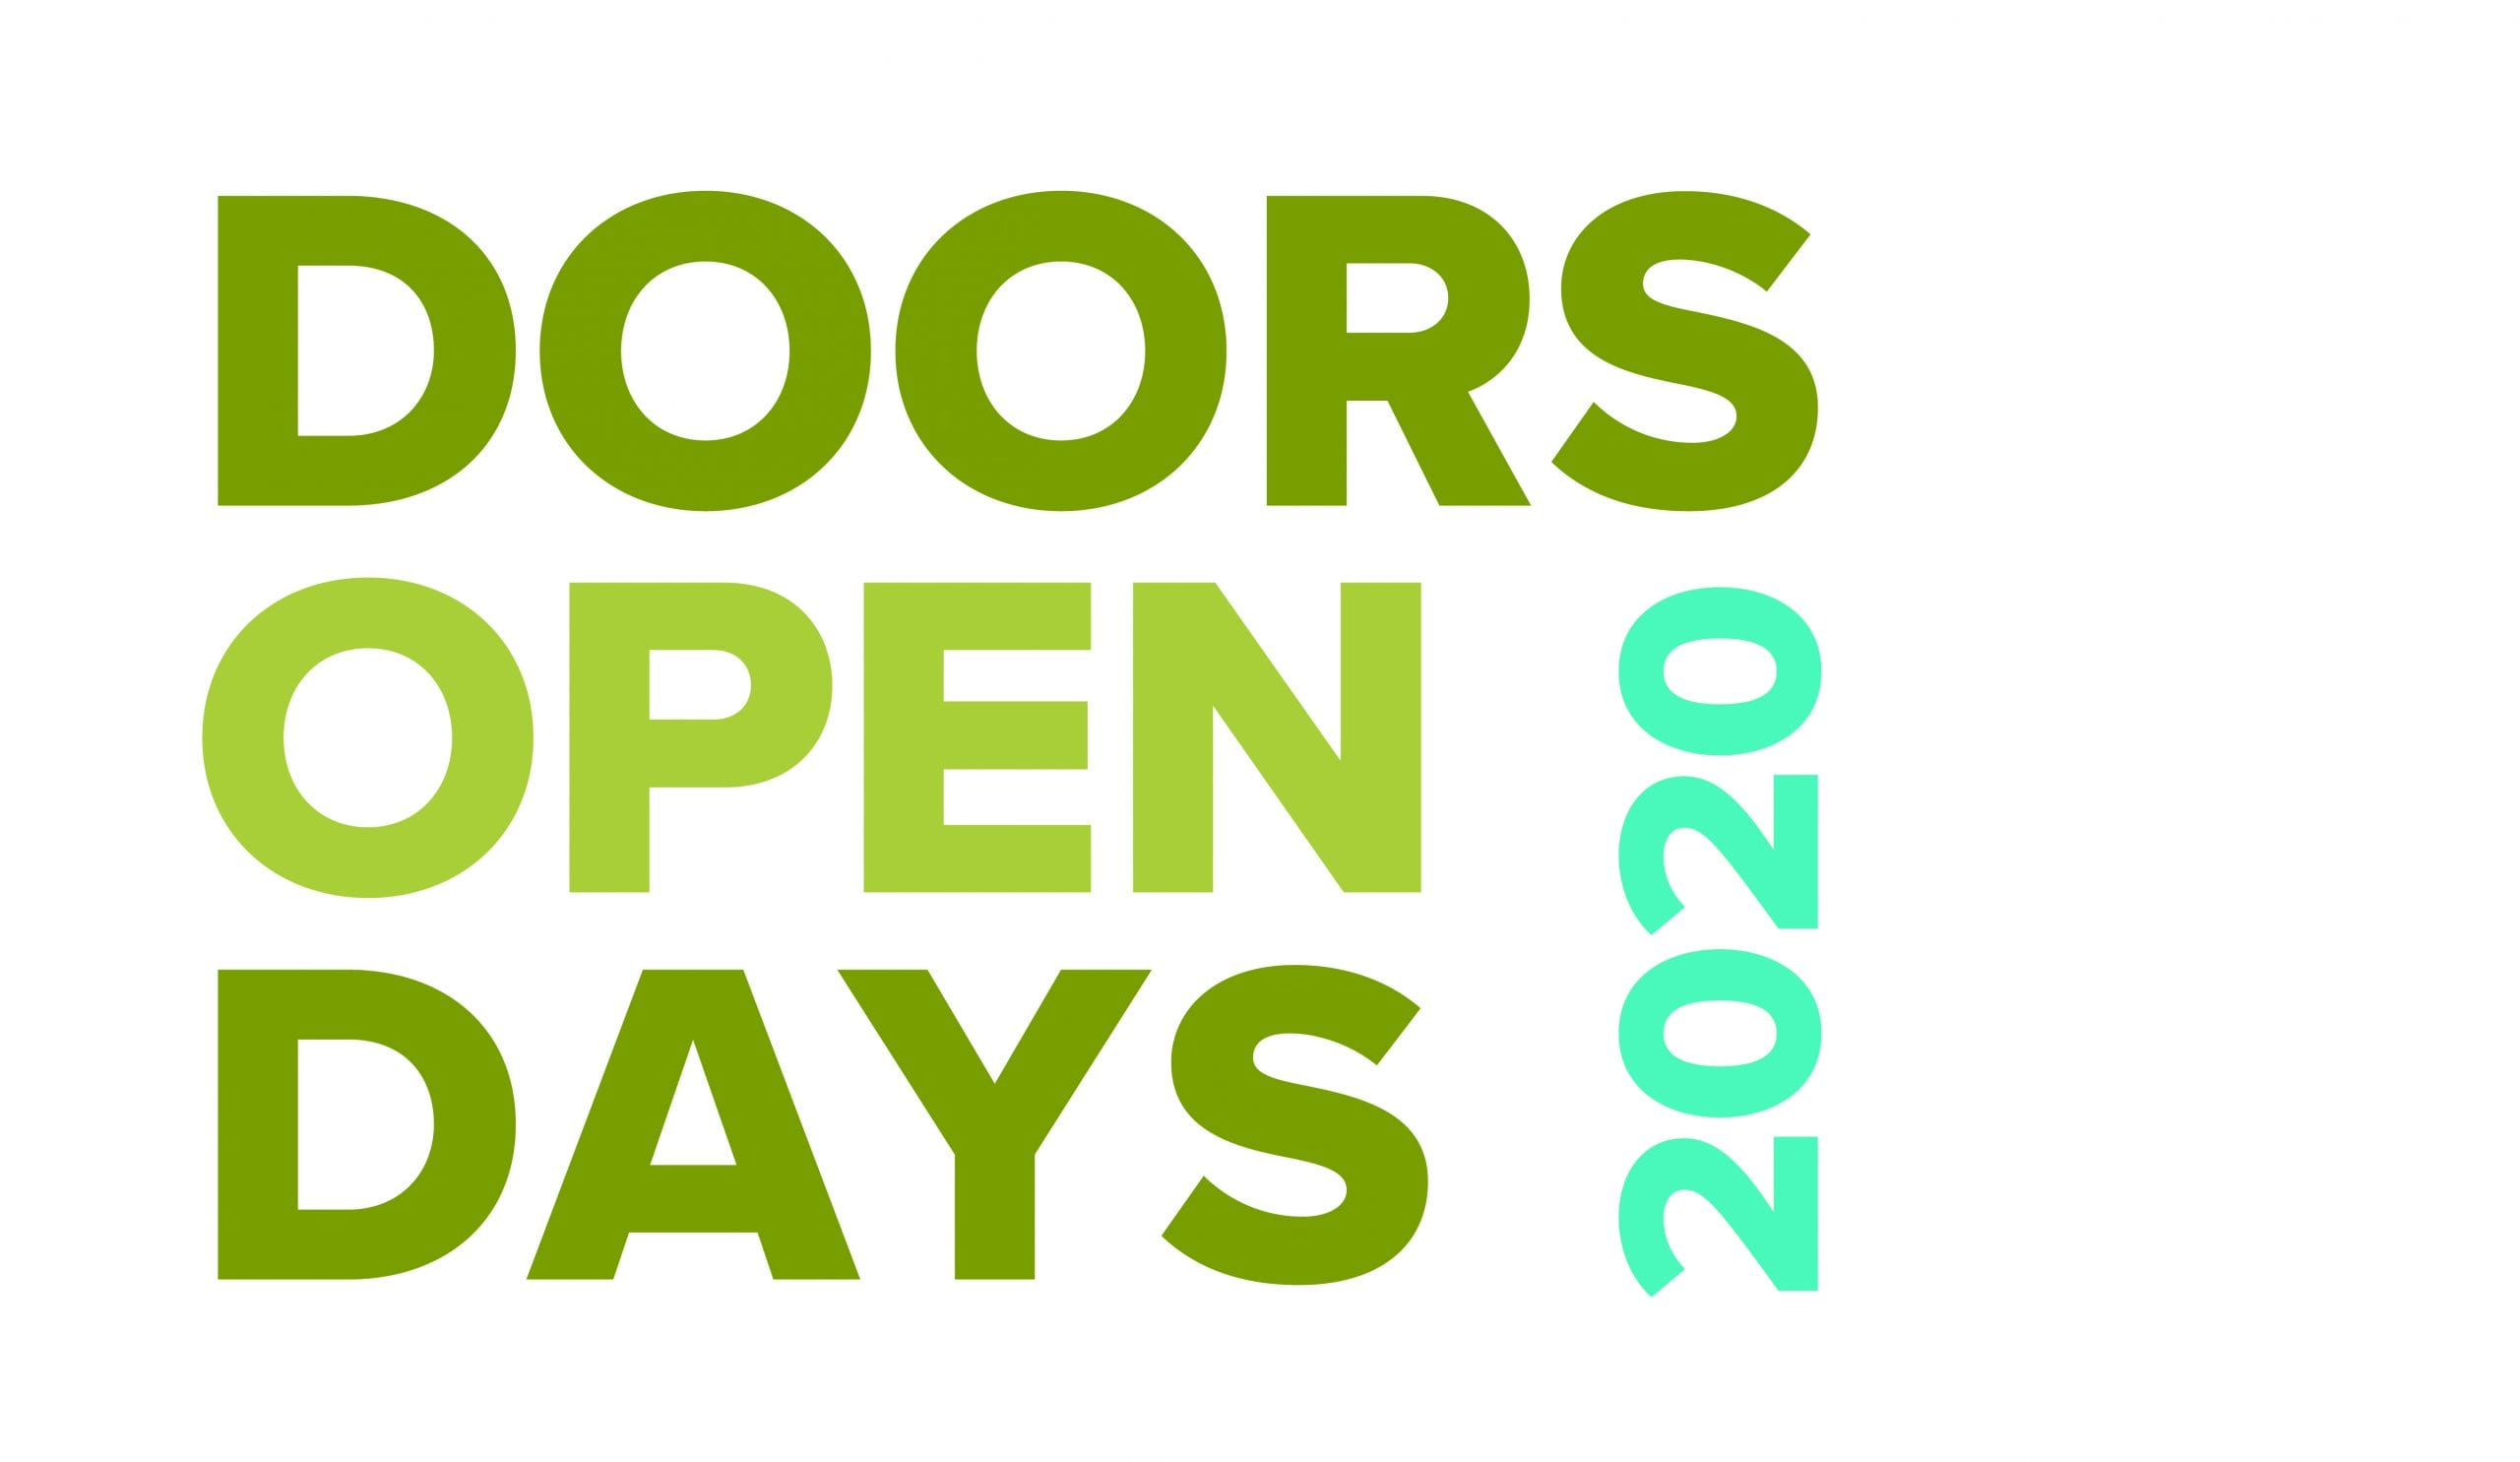 Doors Open Days 2020